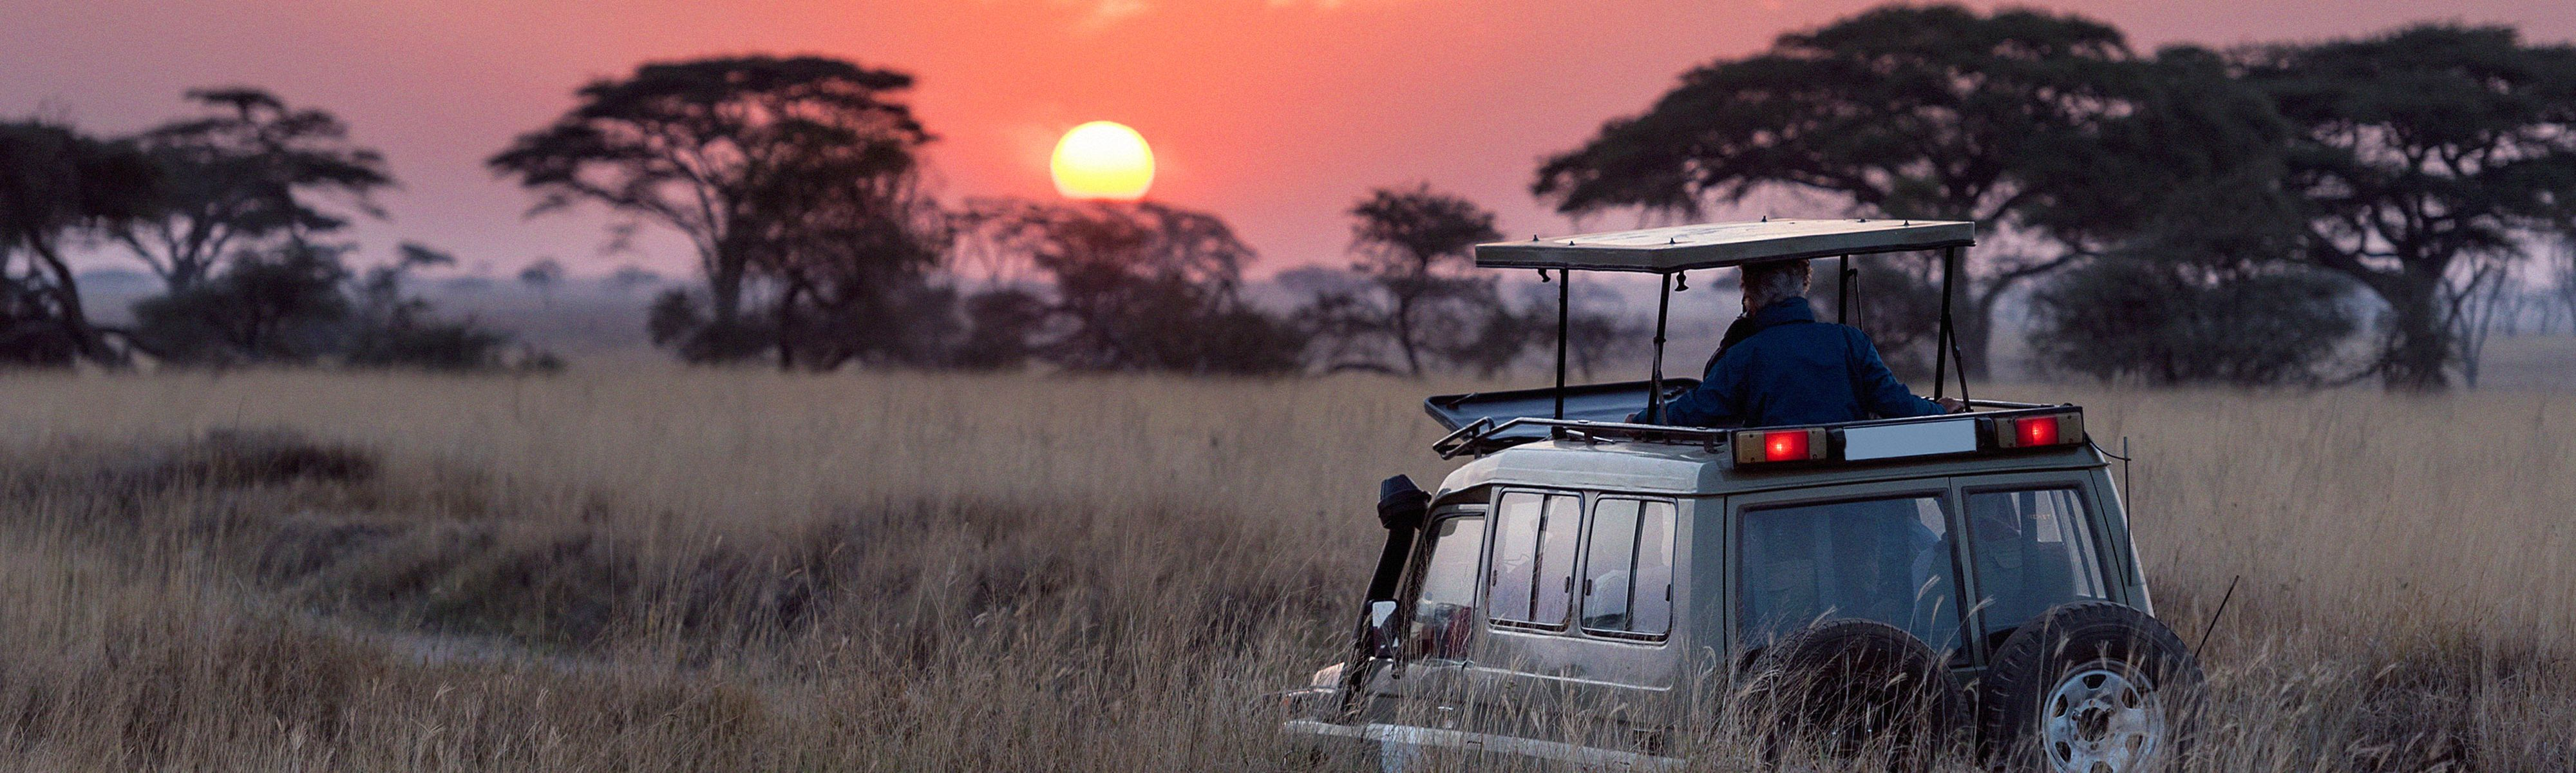 group of travelers riding in a safari jeep through grass fields in africa during sunset